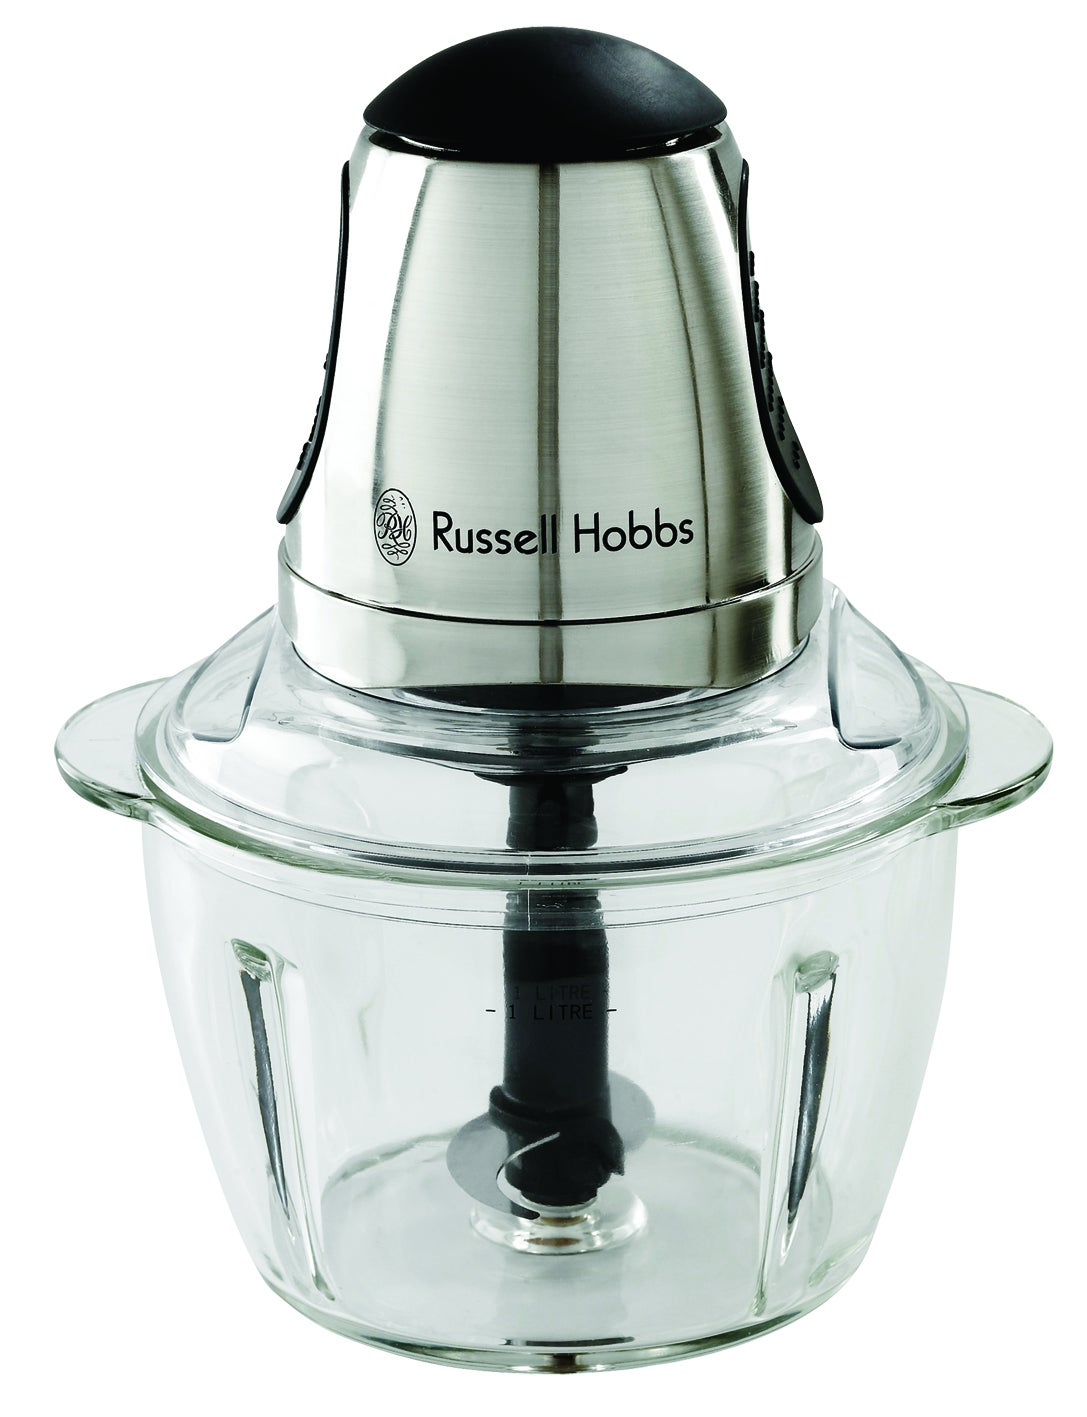 Russell Hobbs 14568 Stainless Steel Silver Mini Food Processor